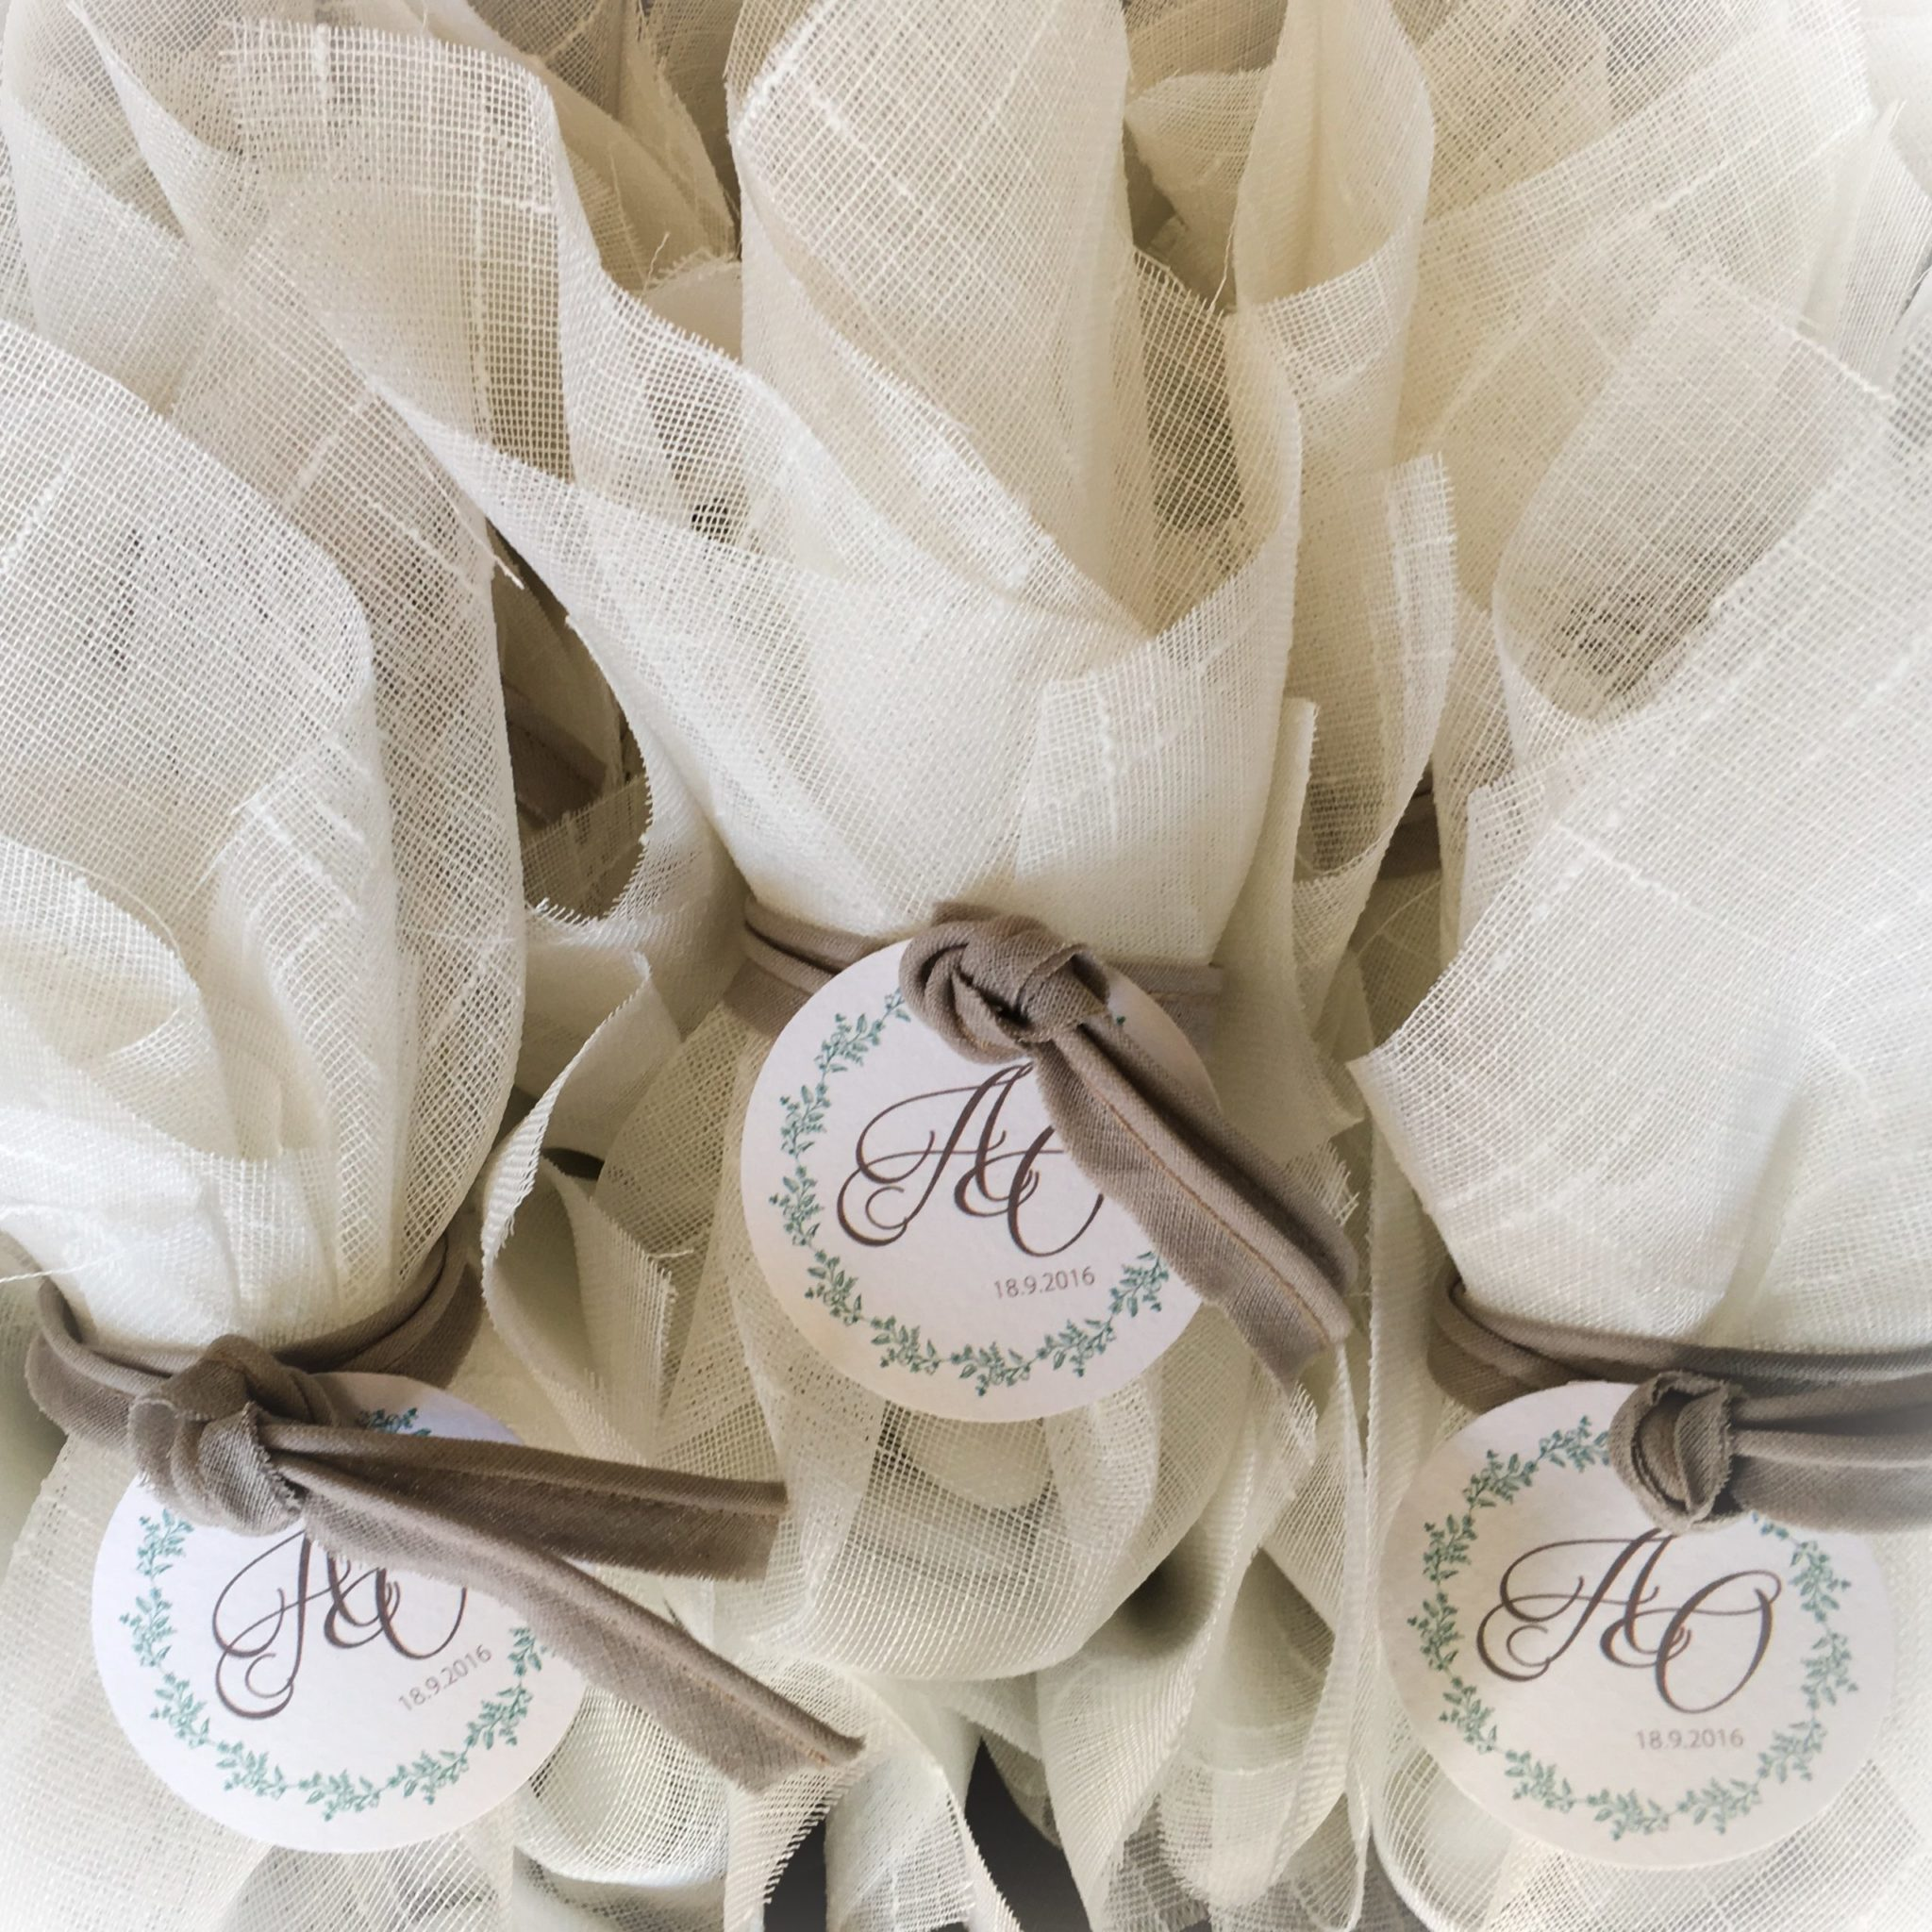 Chic And Simple-wedding favor-work in progress